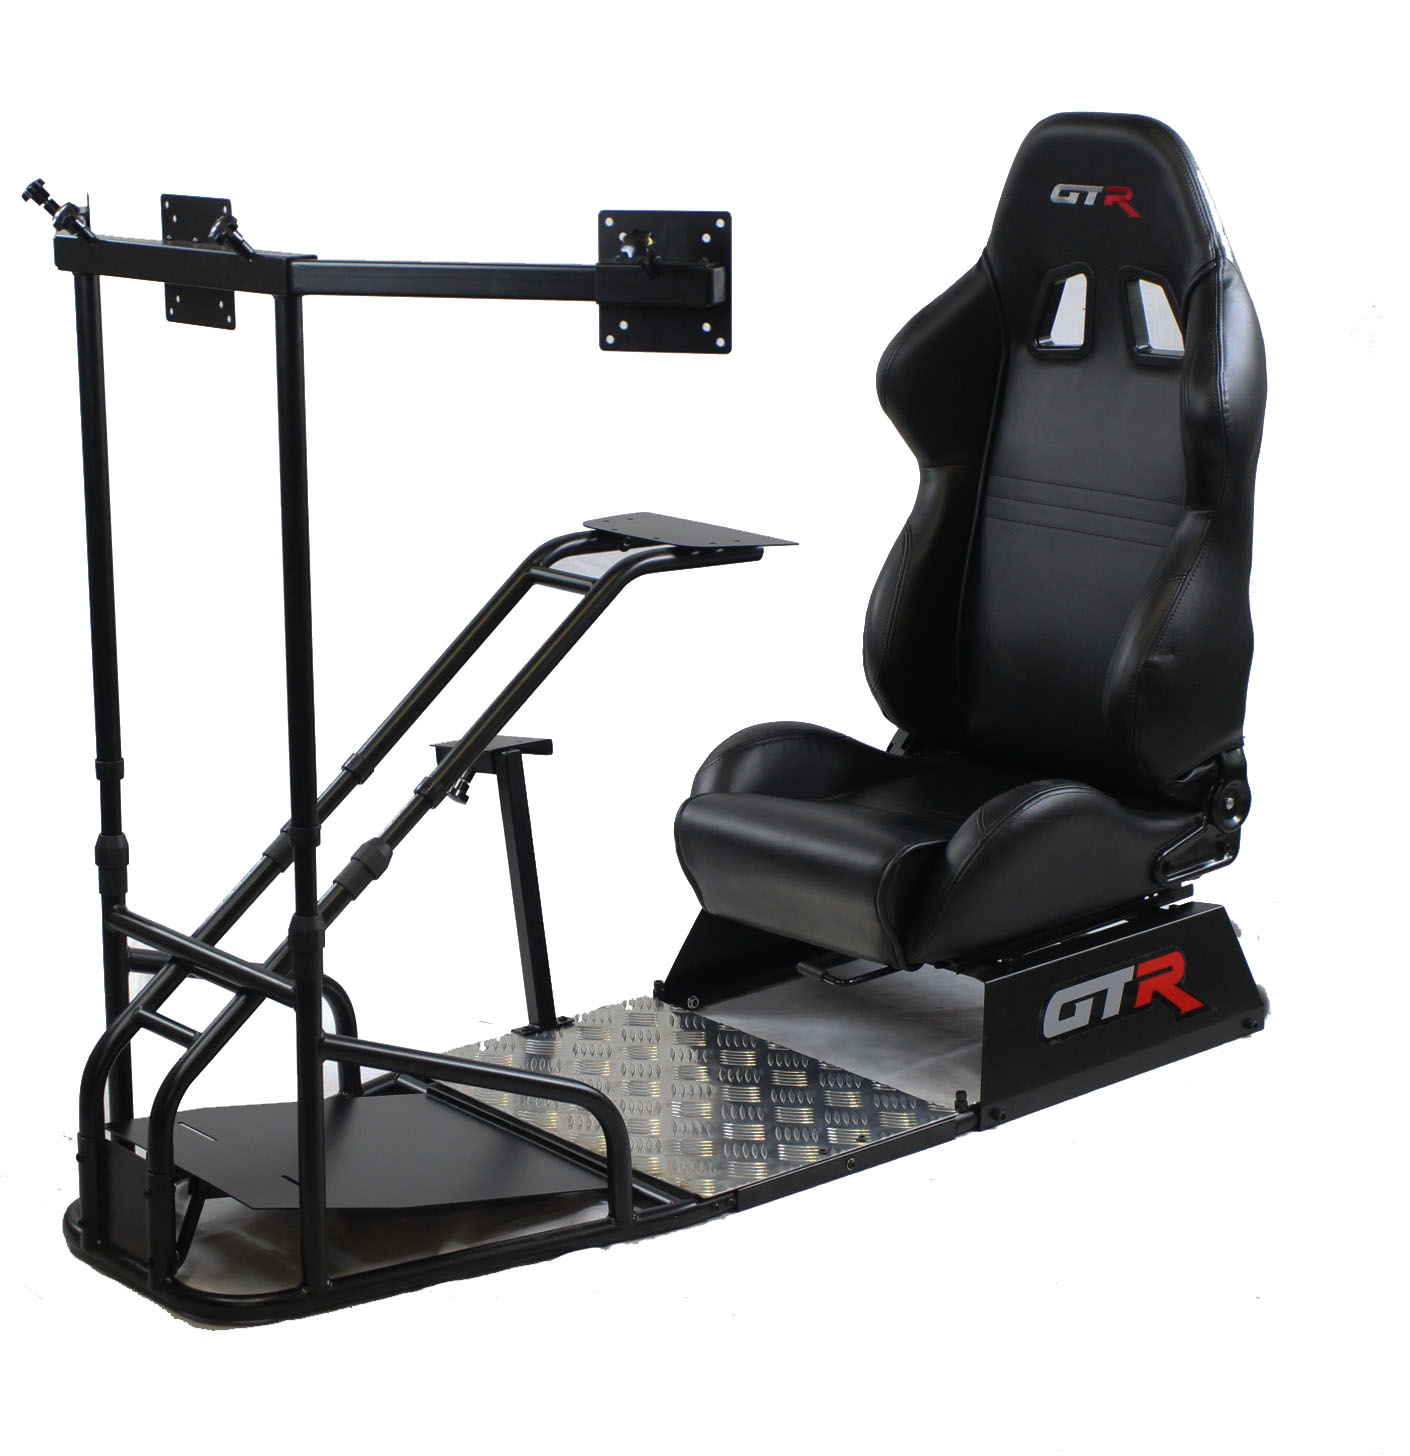 GTR Racing Simulator - GTSF Model (Black Color) with Real Racing Seat, Driving Simulator Cockpit with Gear Shifter Mount and Triple or Single Monitor Mount